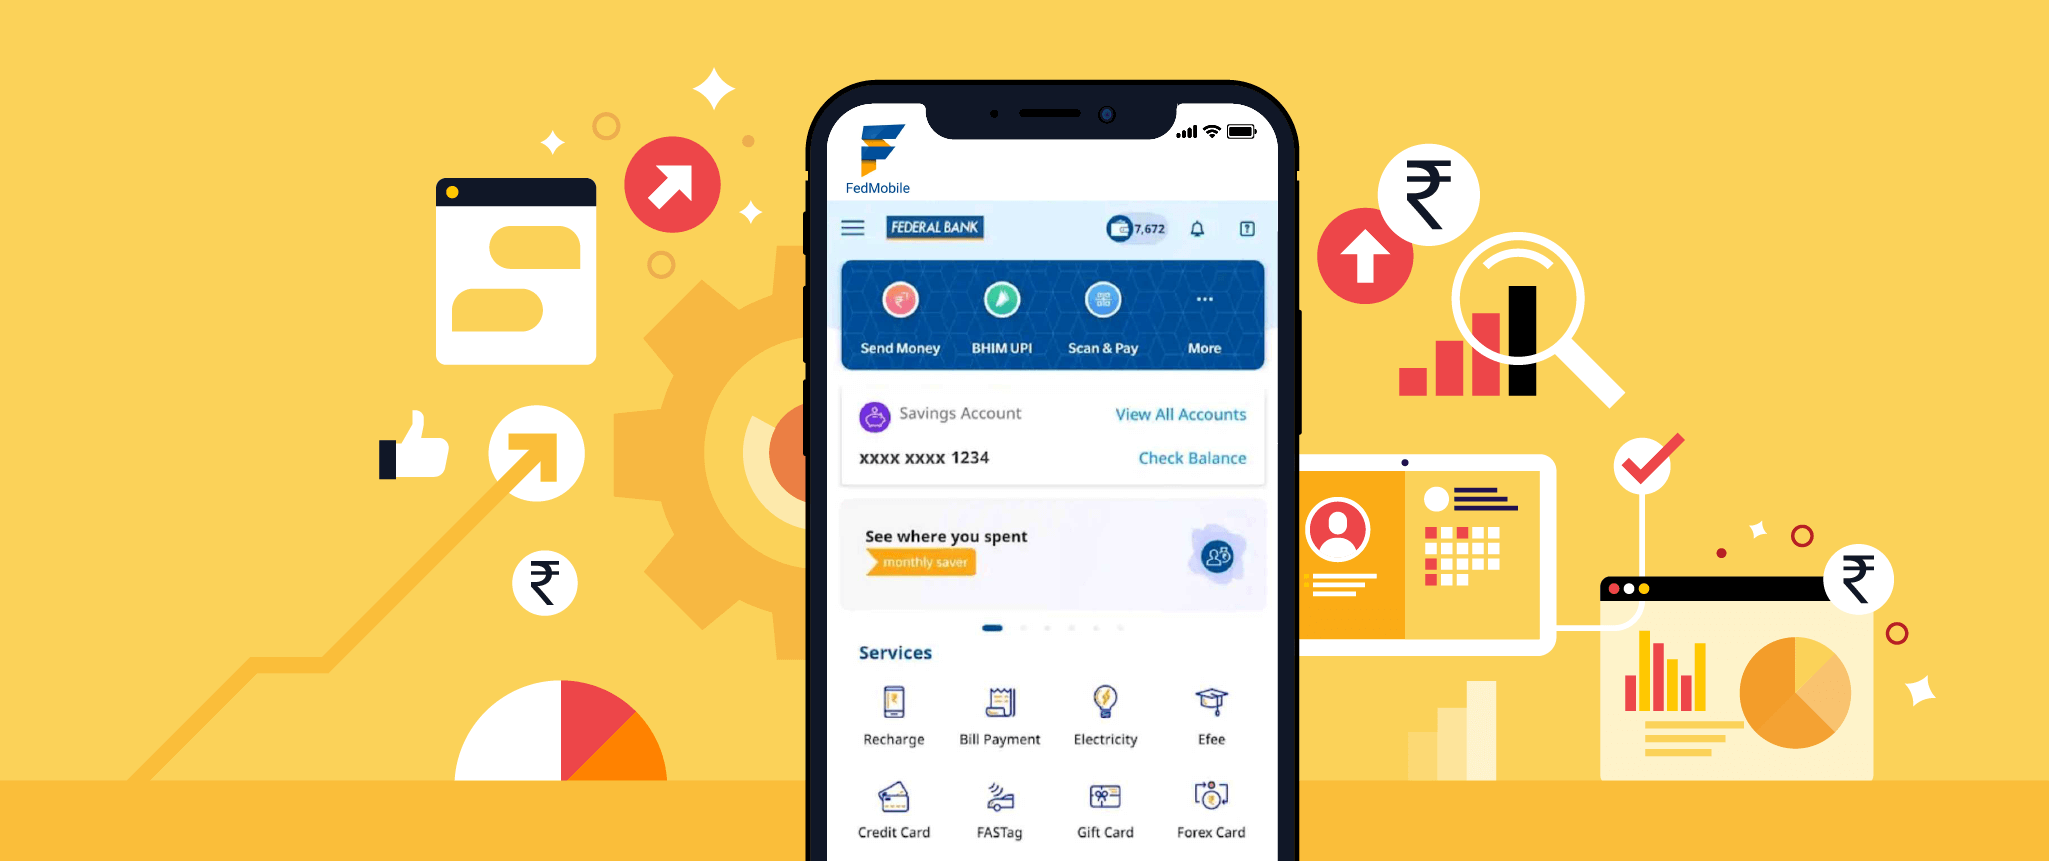 How Federal Bank Builds Customer Journeys to Become a Super App